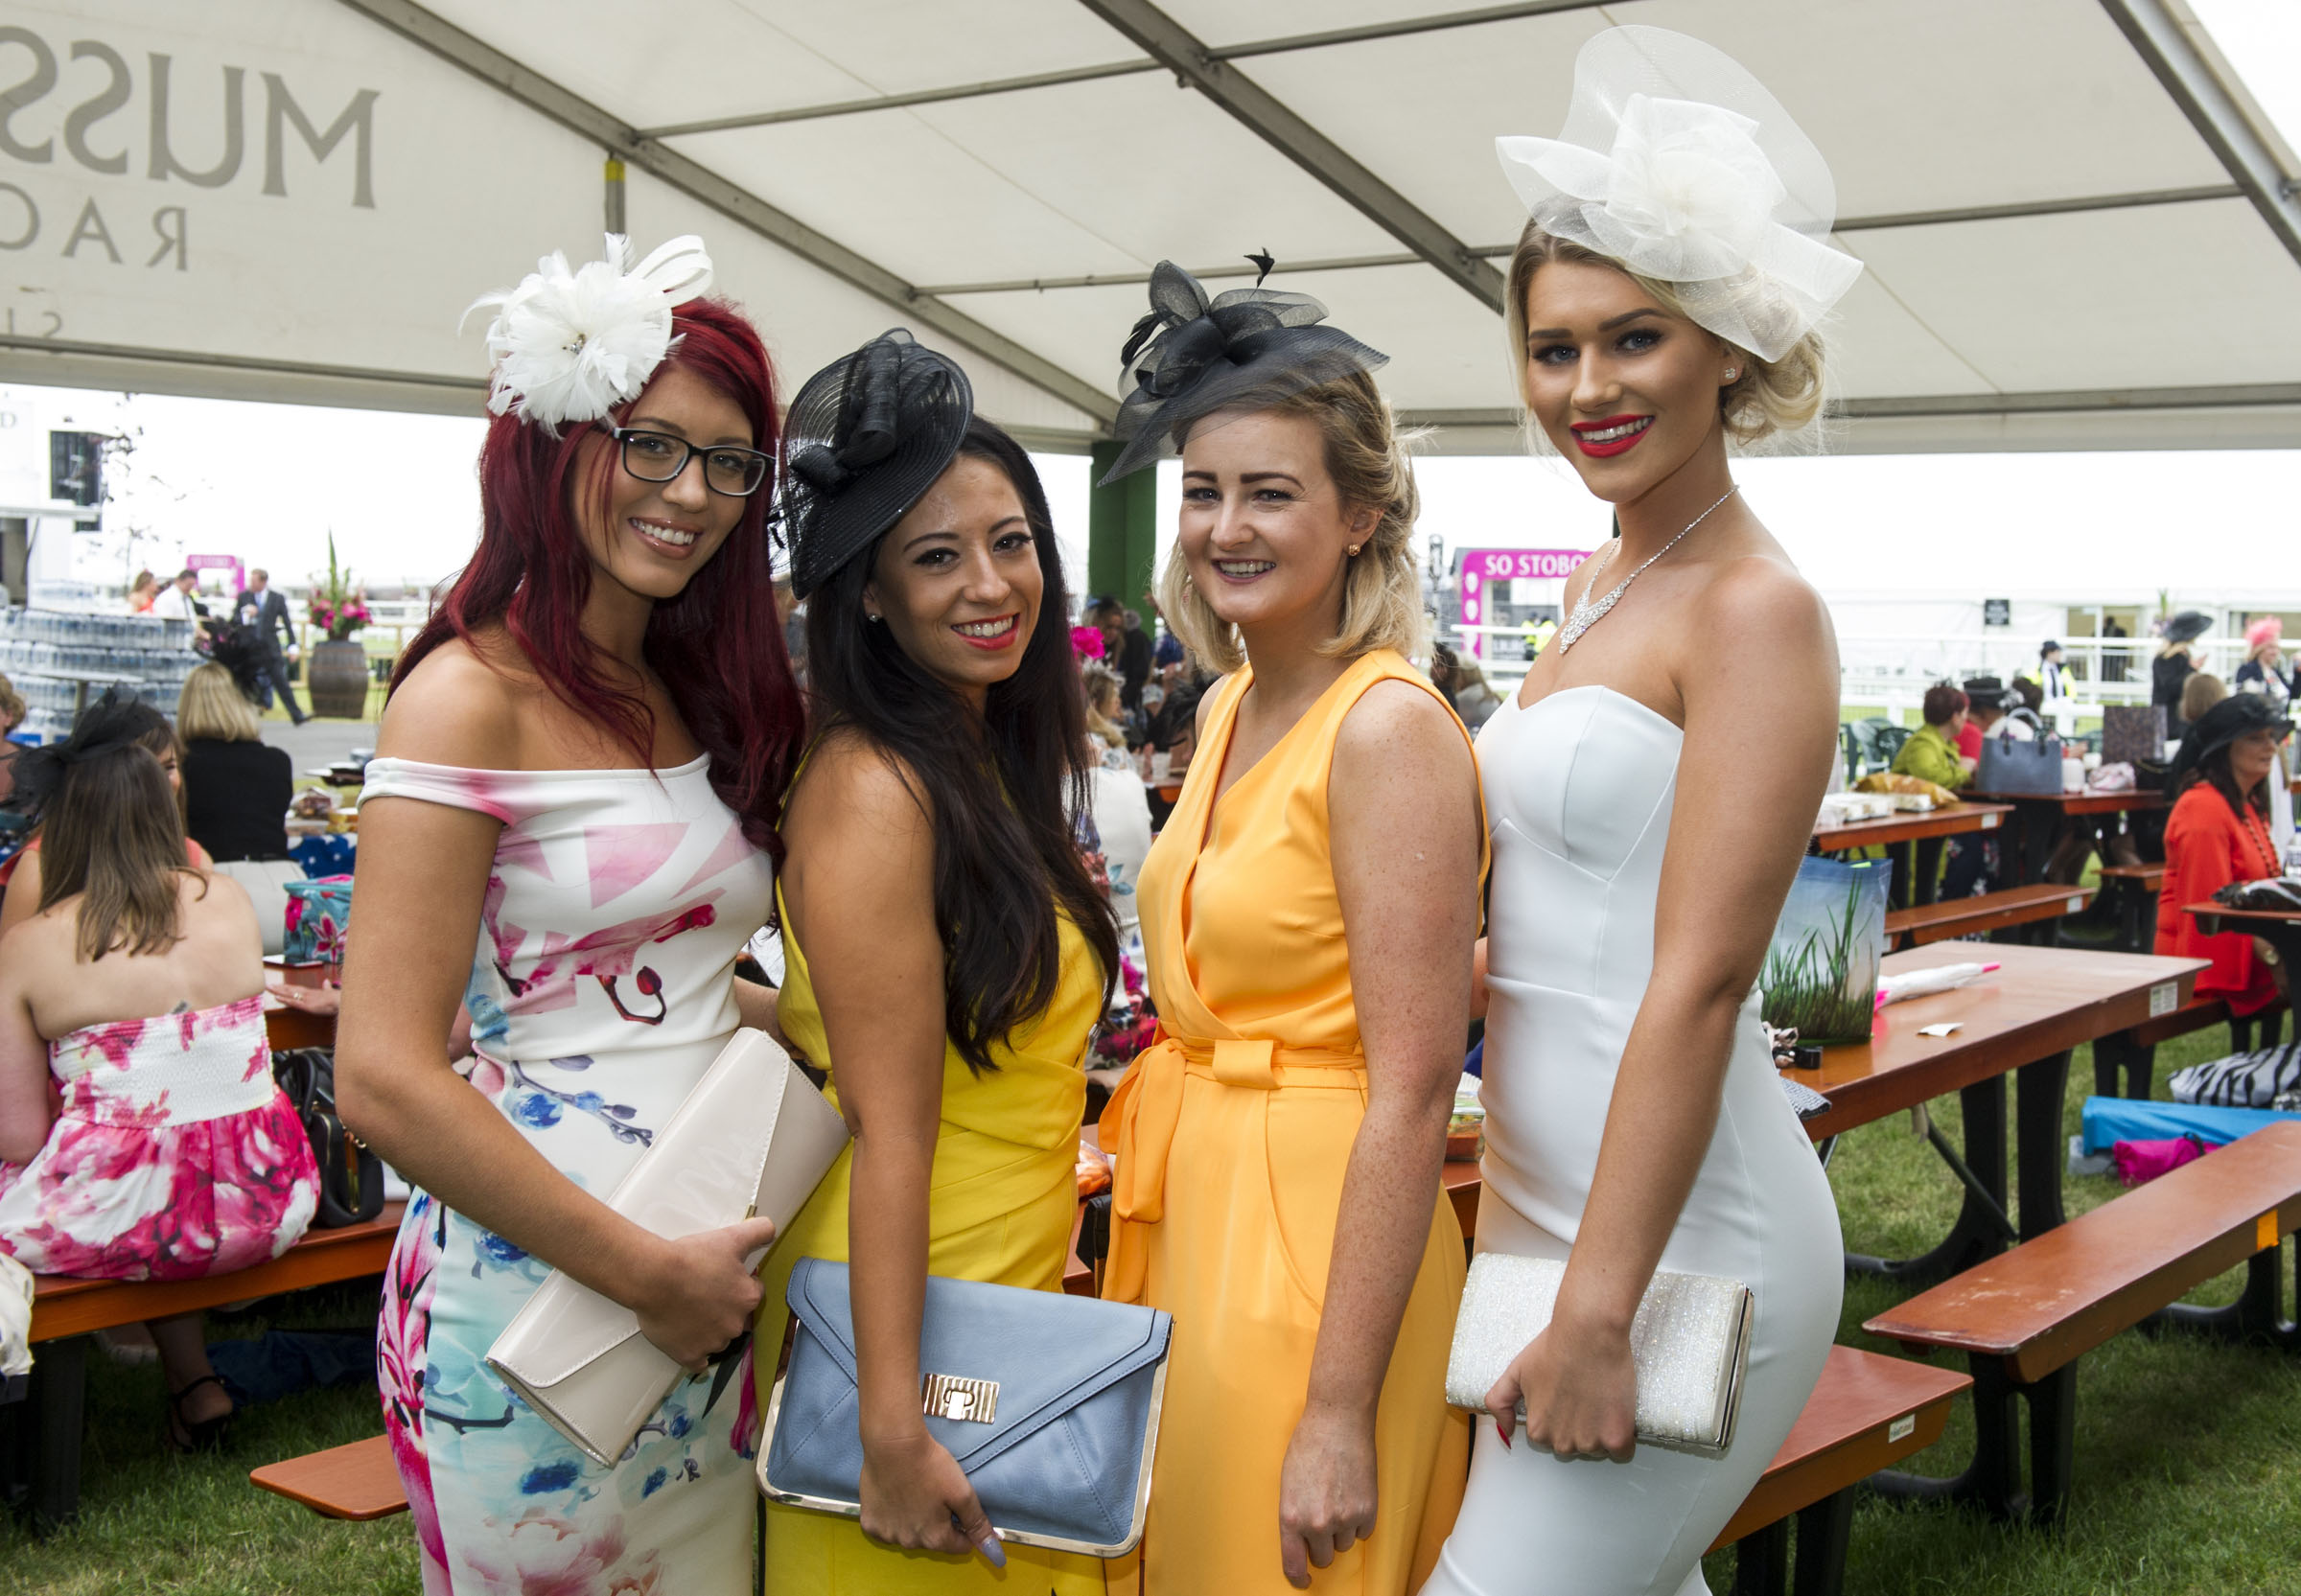 Musselburgh Racecourse Stobo Castle Ladies Day 2016. Pic shows l to r: Abbey Dove. Sarah Reid. Alics Easton. Kim Scott.